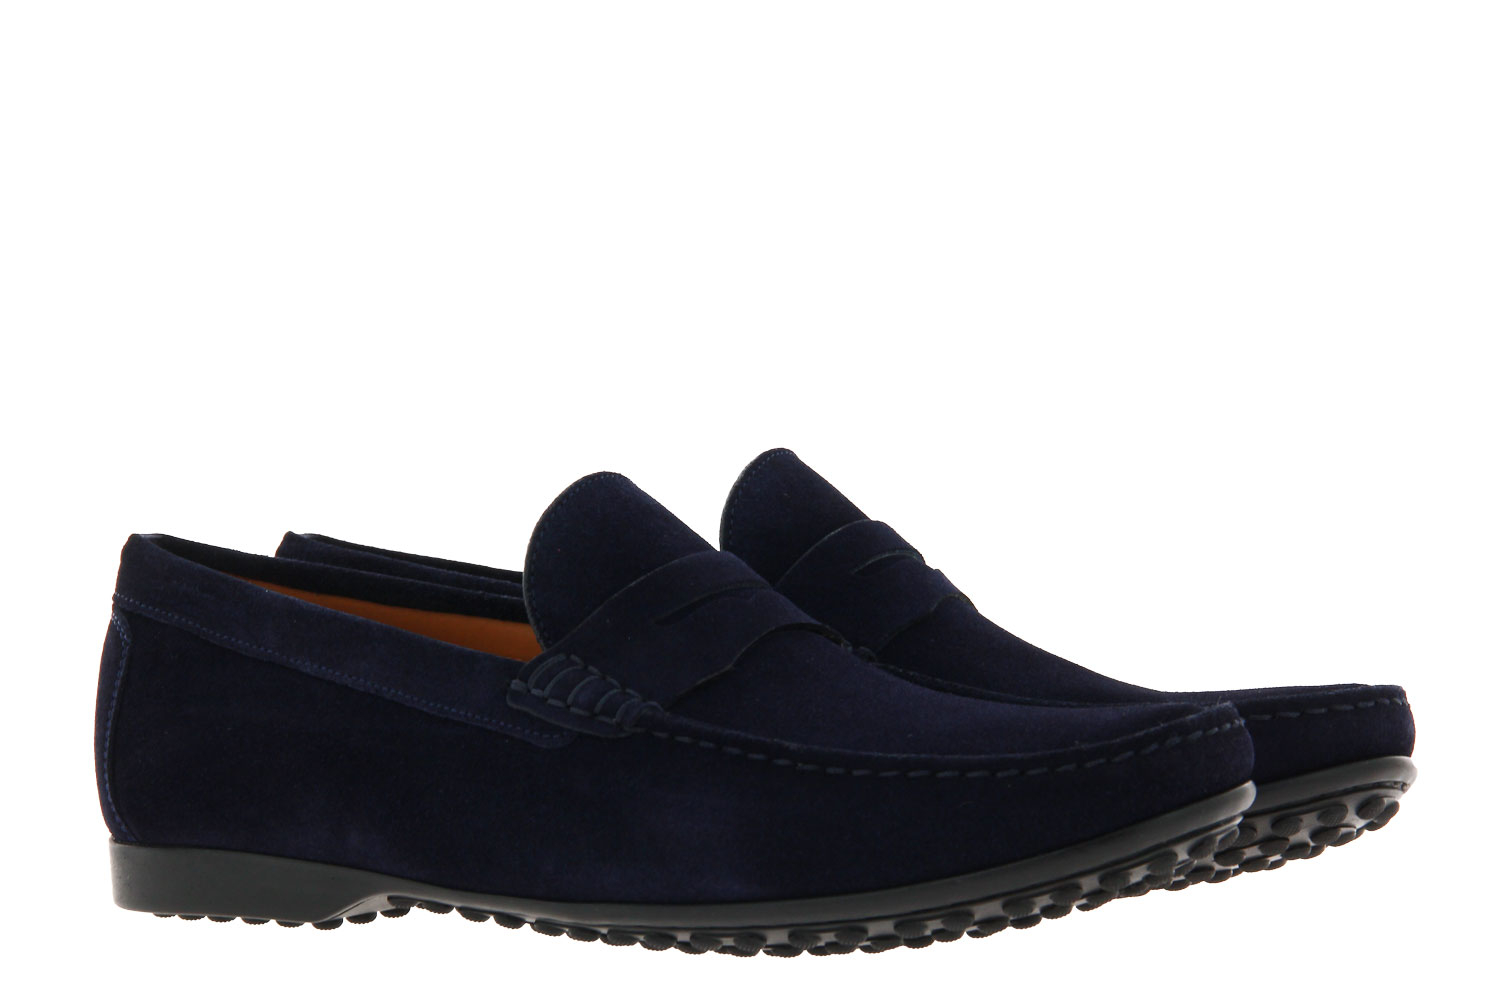 Ludwig Reiter moccasin PENNY LOAFER NAVY